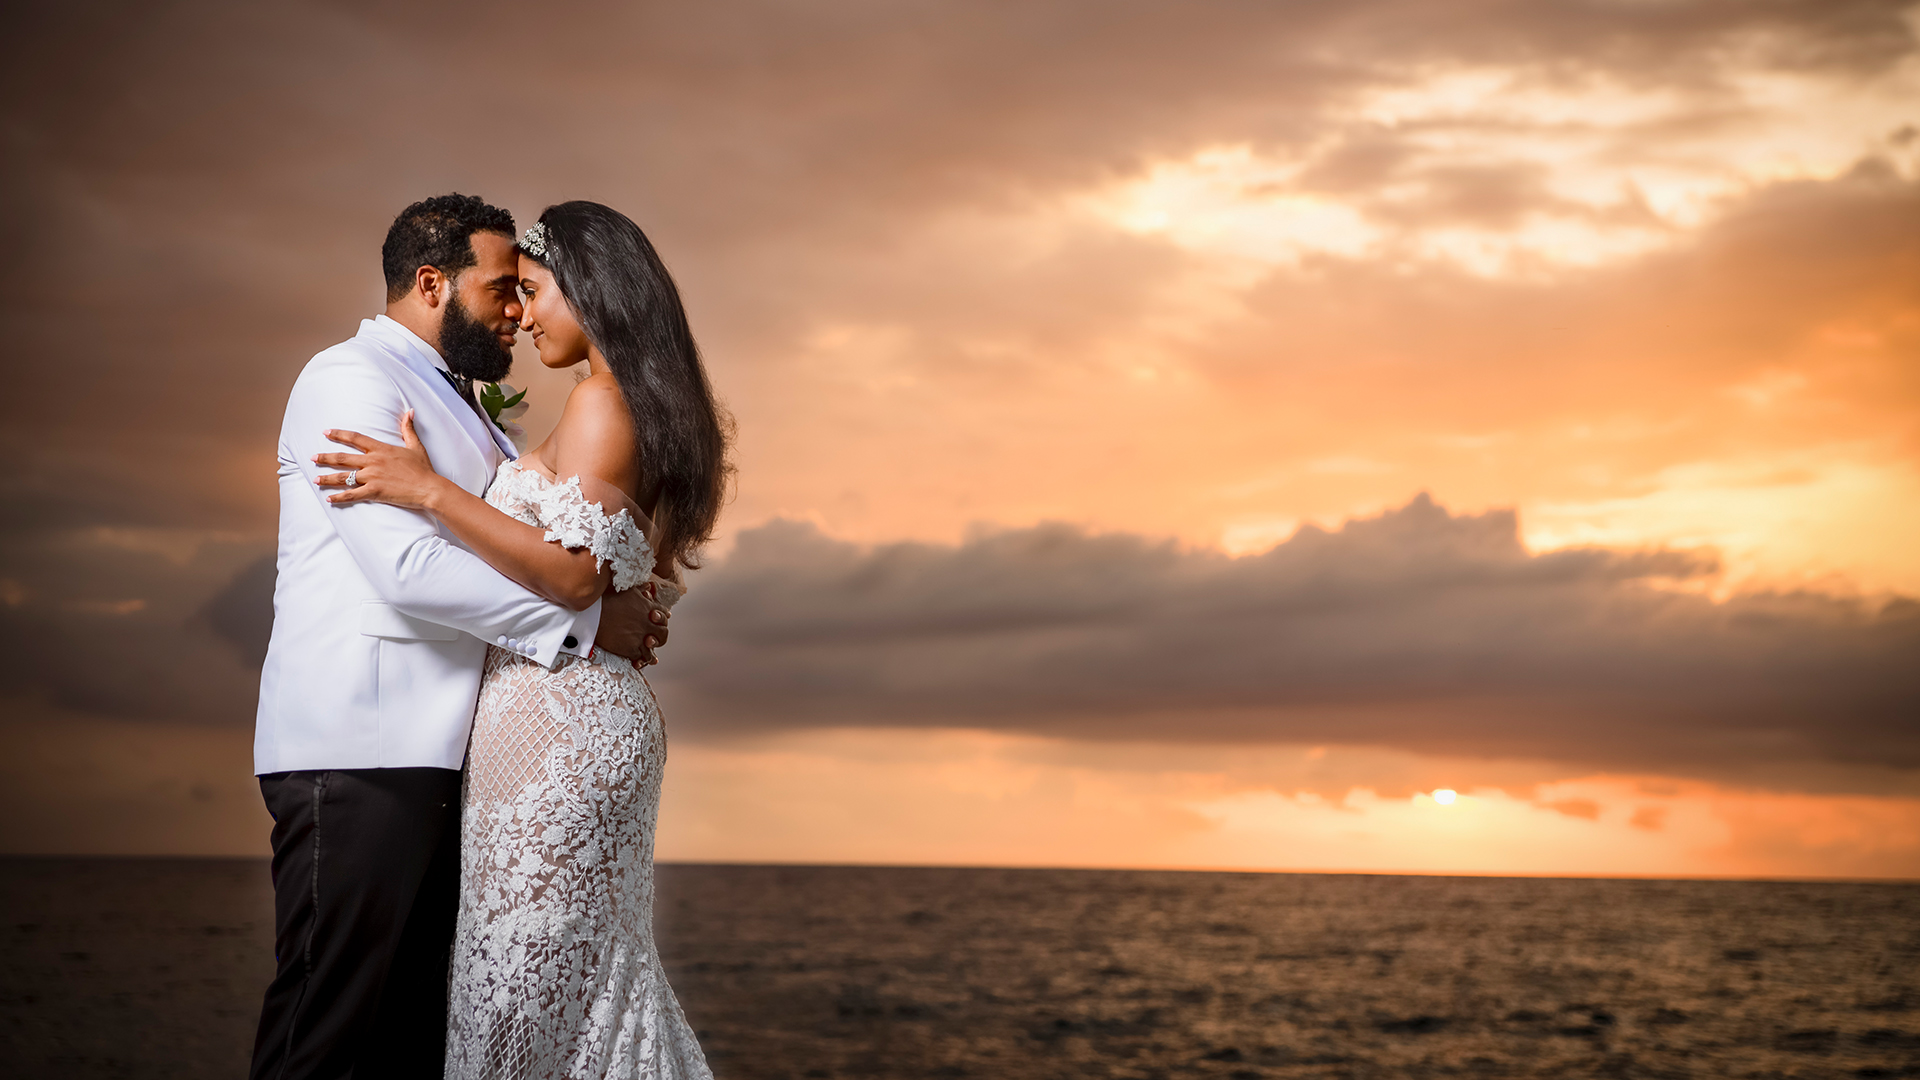 Lori + Estaban | Negril, Jamaica | The Cliffs Jamaica